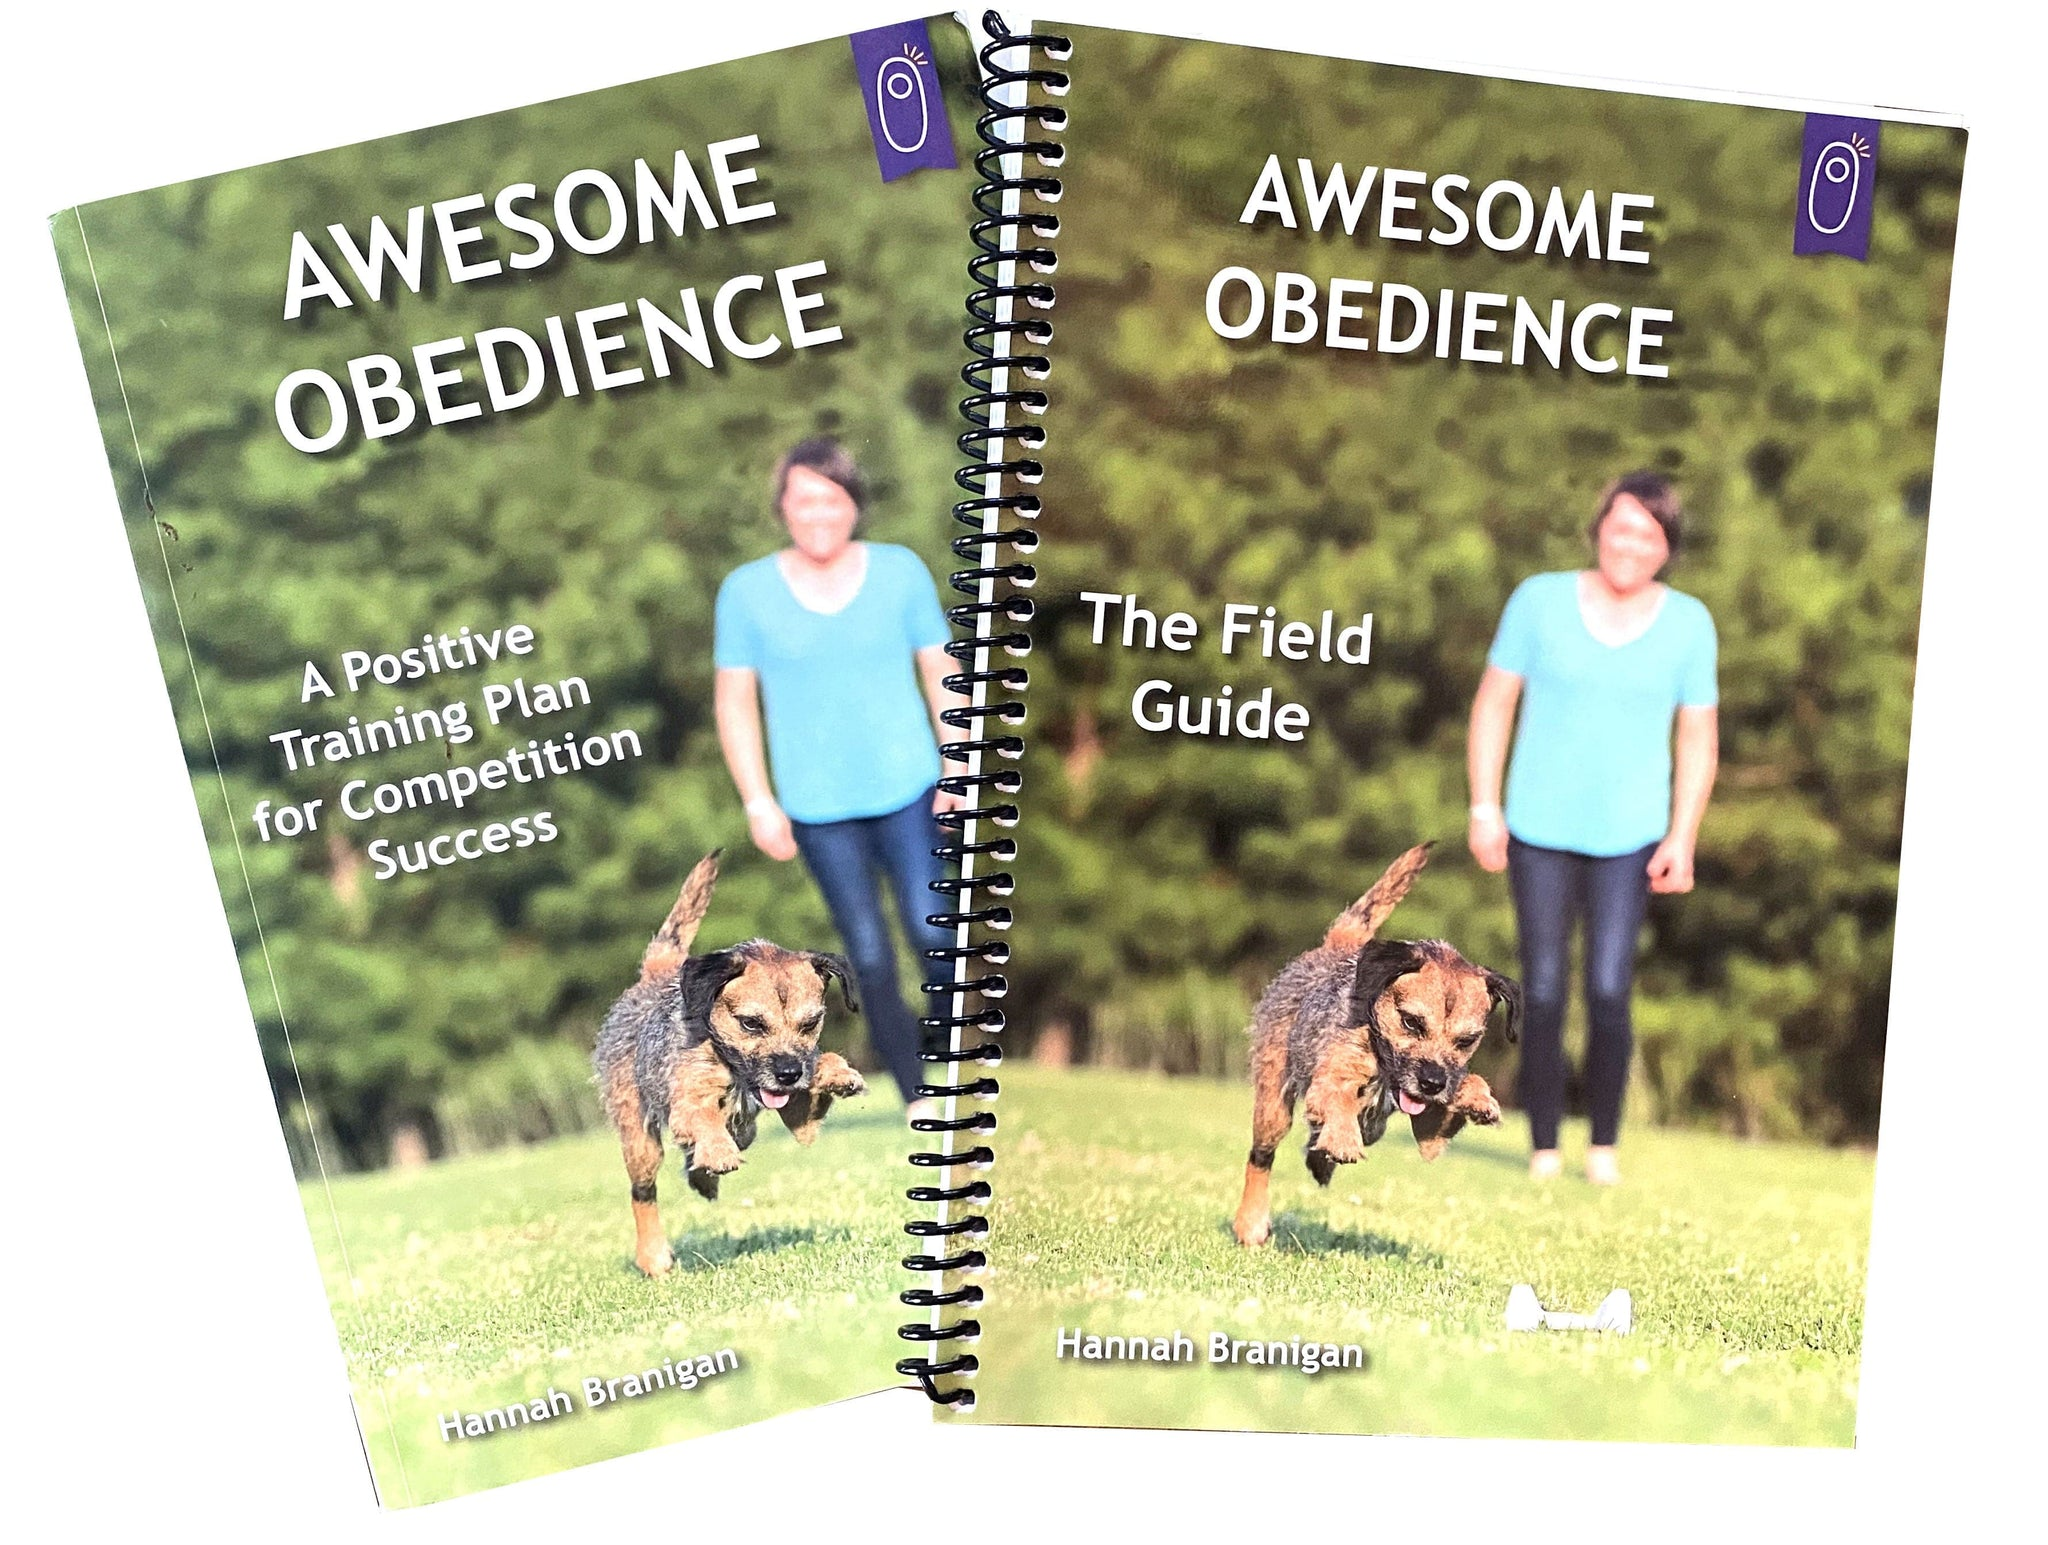 Awesome Obedience: The Field Guide